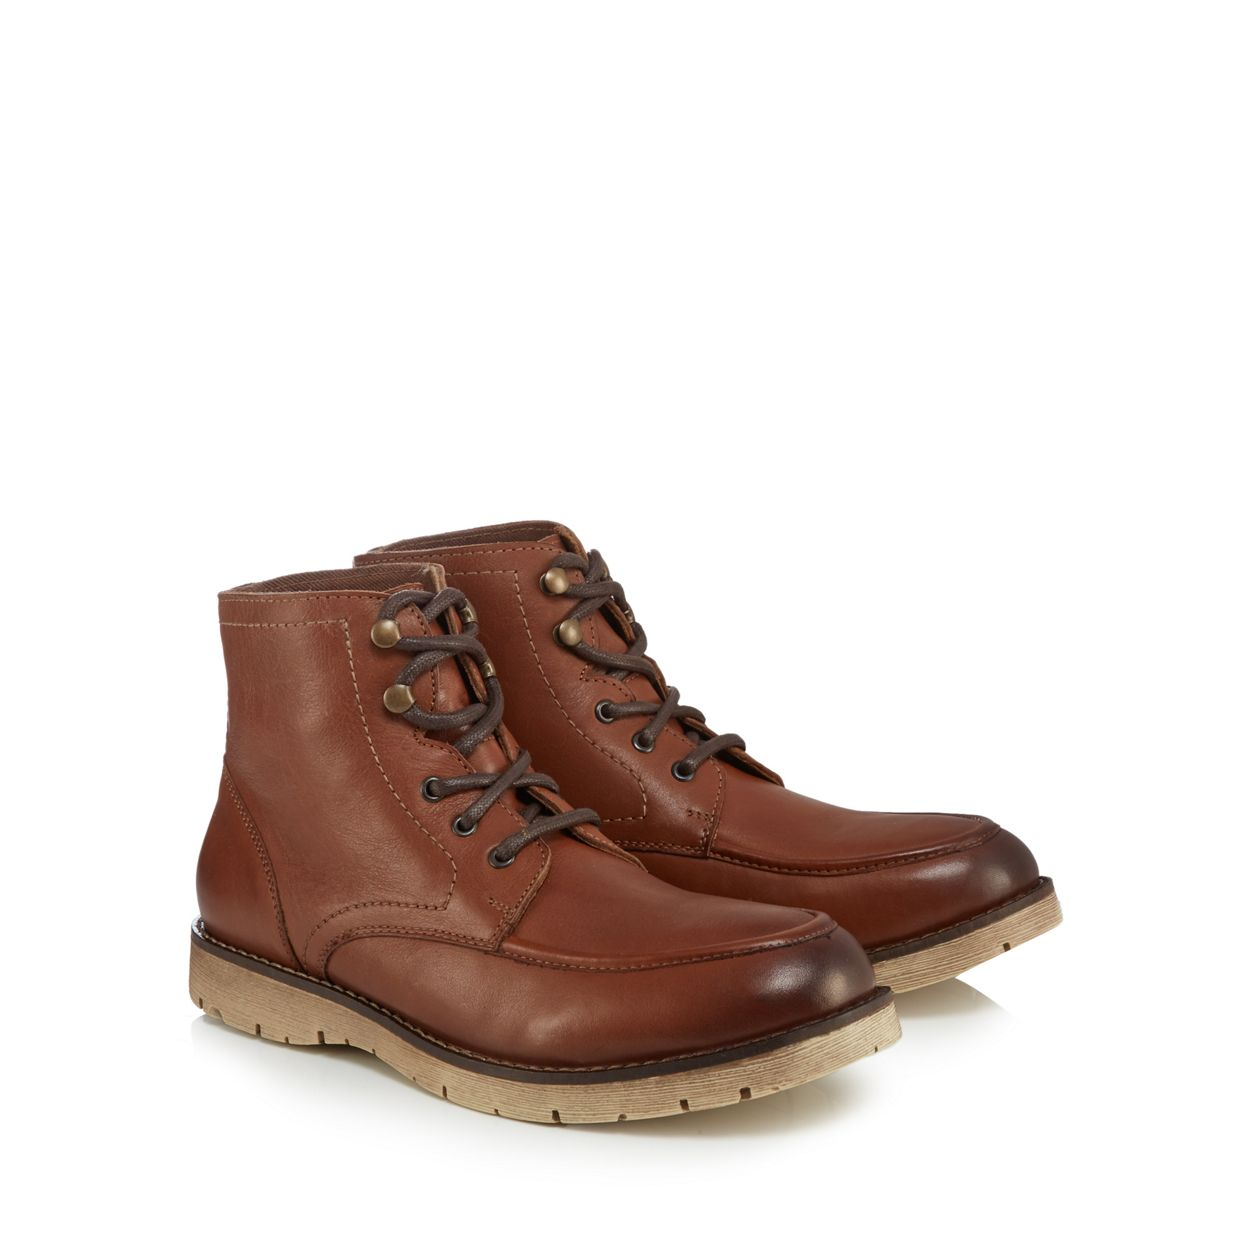 Mantaray Tan leather 'Minsk' lace up boots